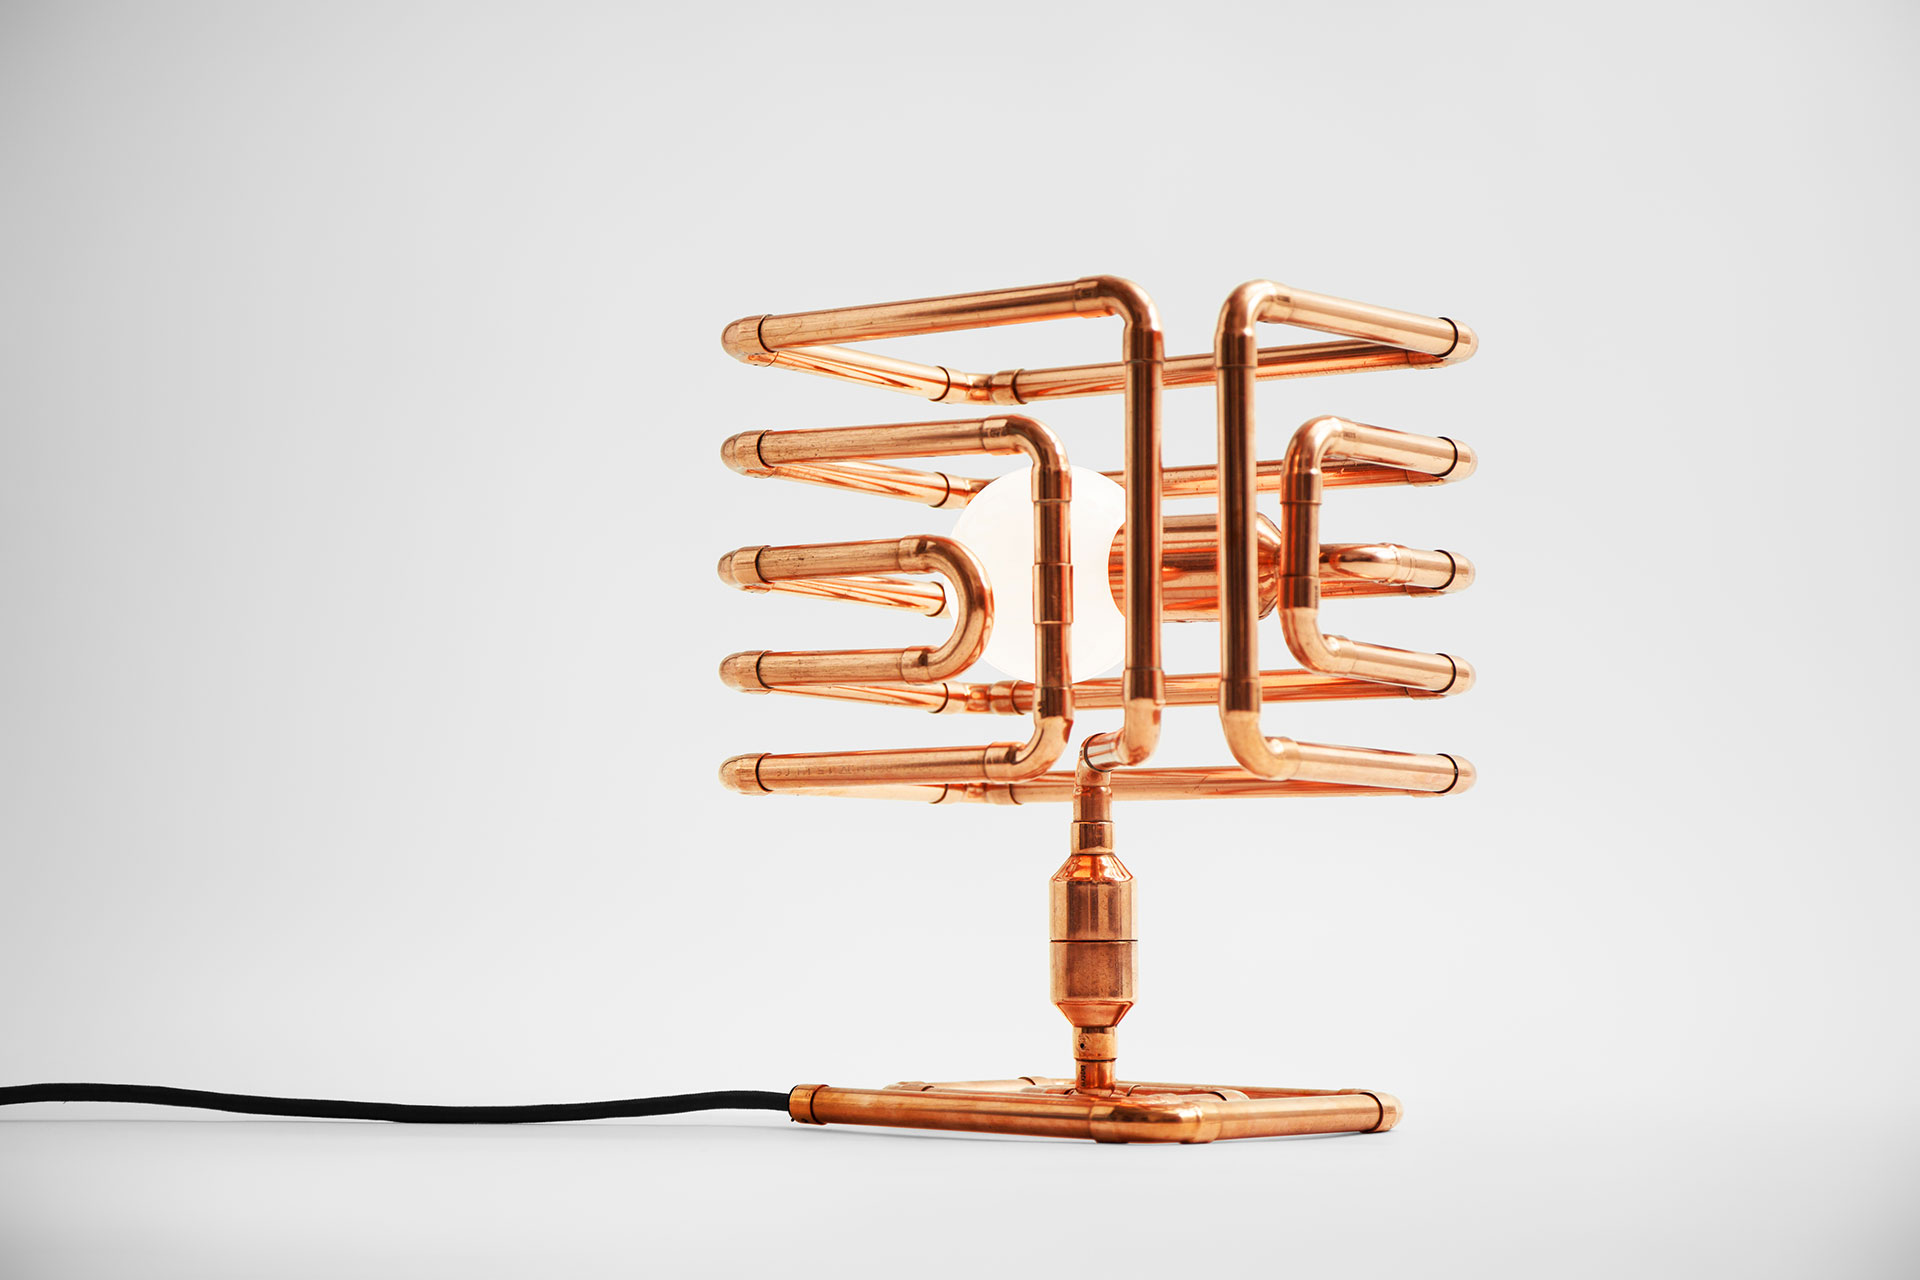 Futuristic design table lamp in trendy copper metal finish inspired by conceptual pipe art